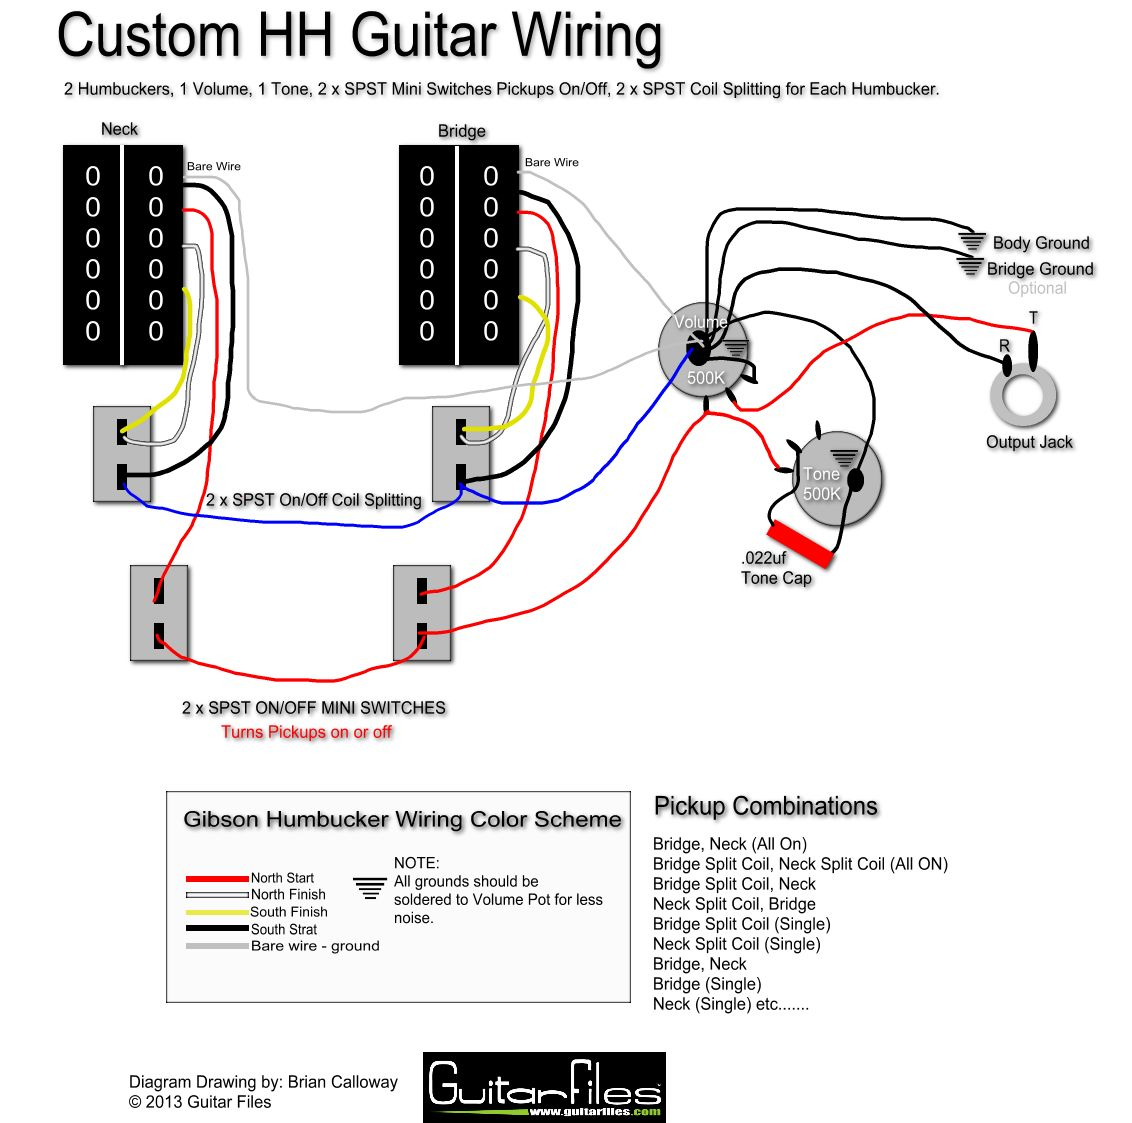 Pin on Guitar wiring